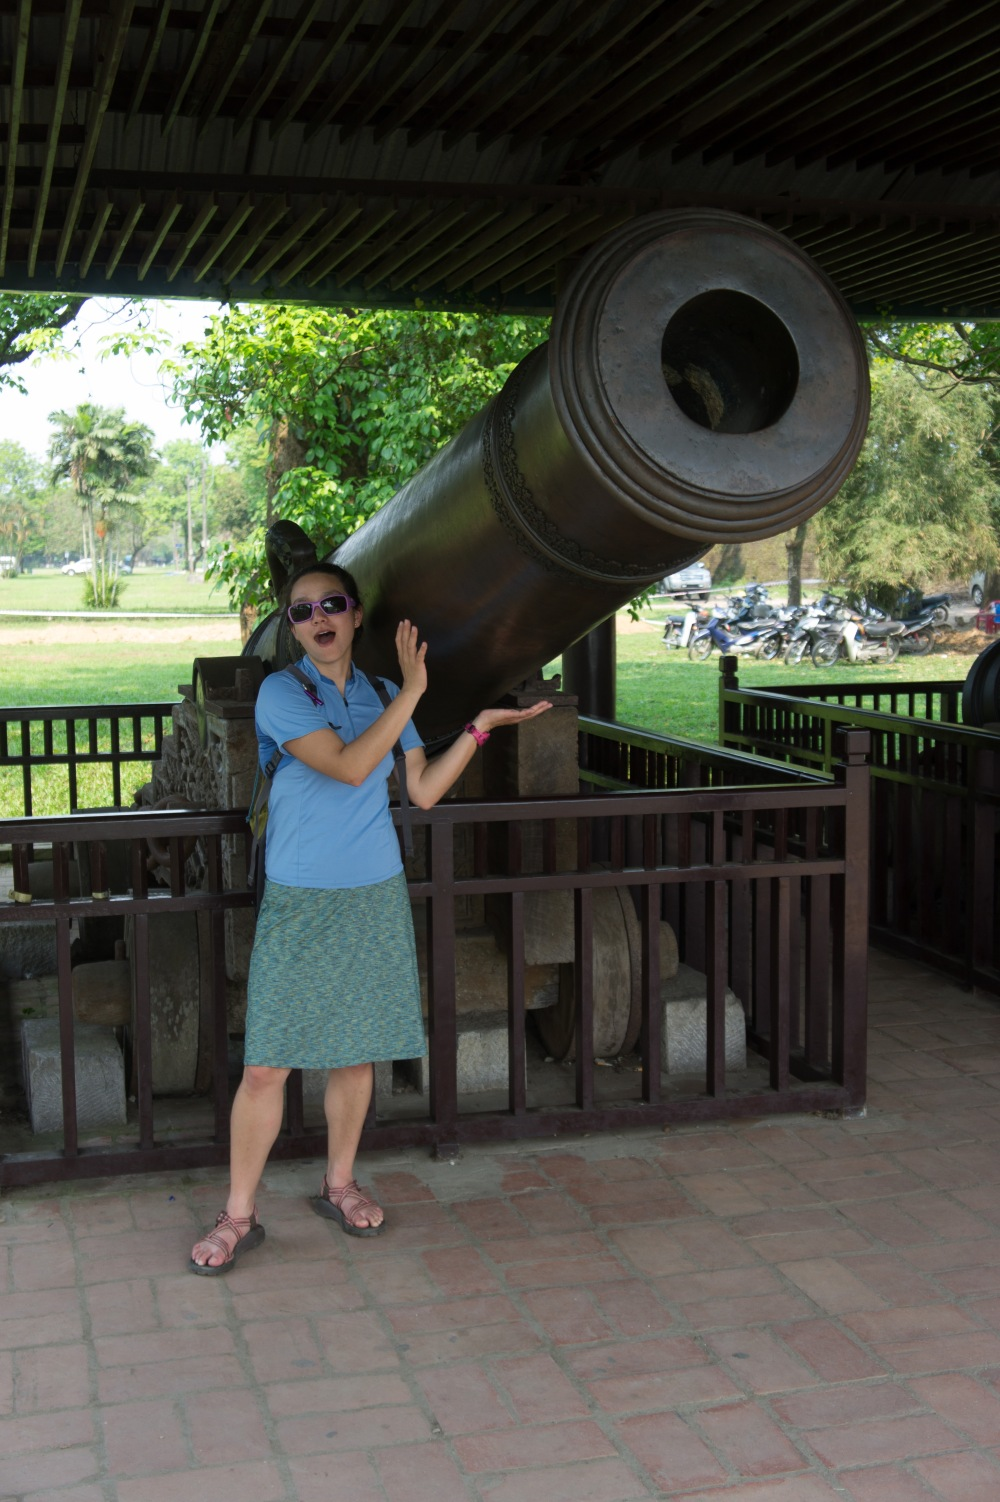 Cannon outside the Imperial City in Hue